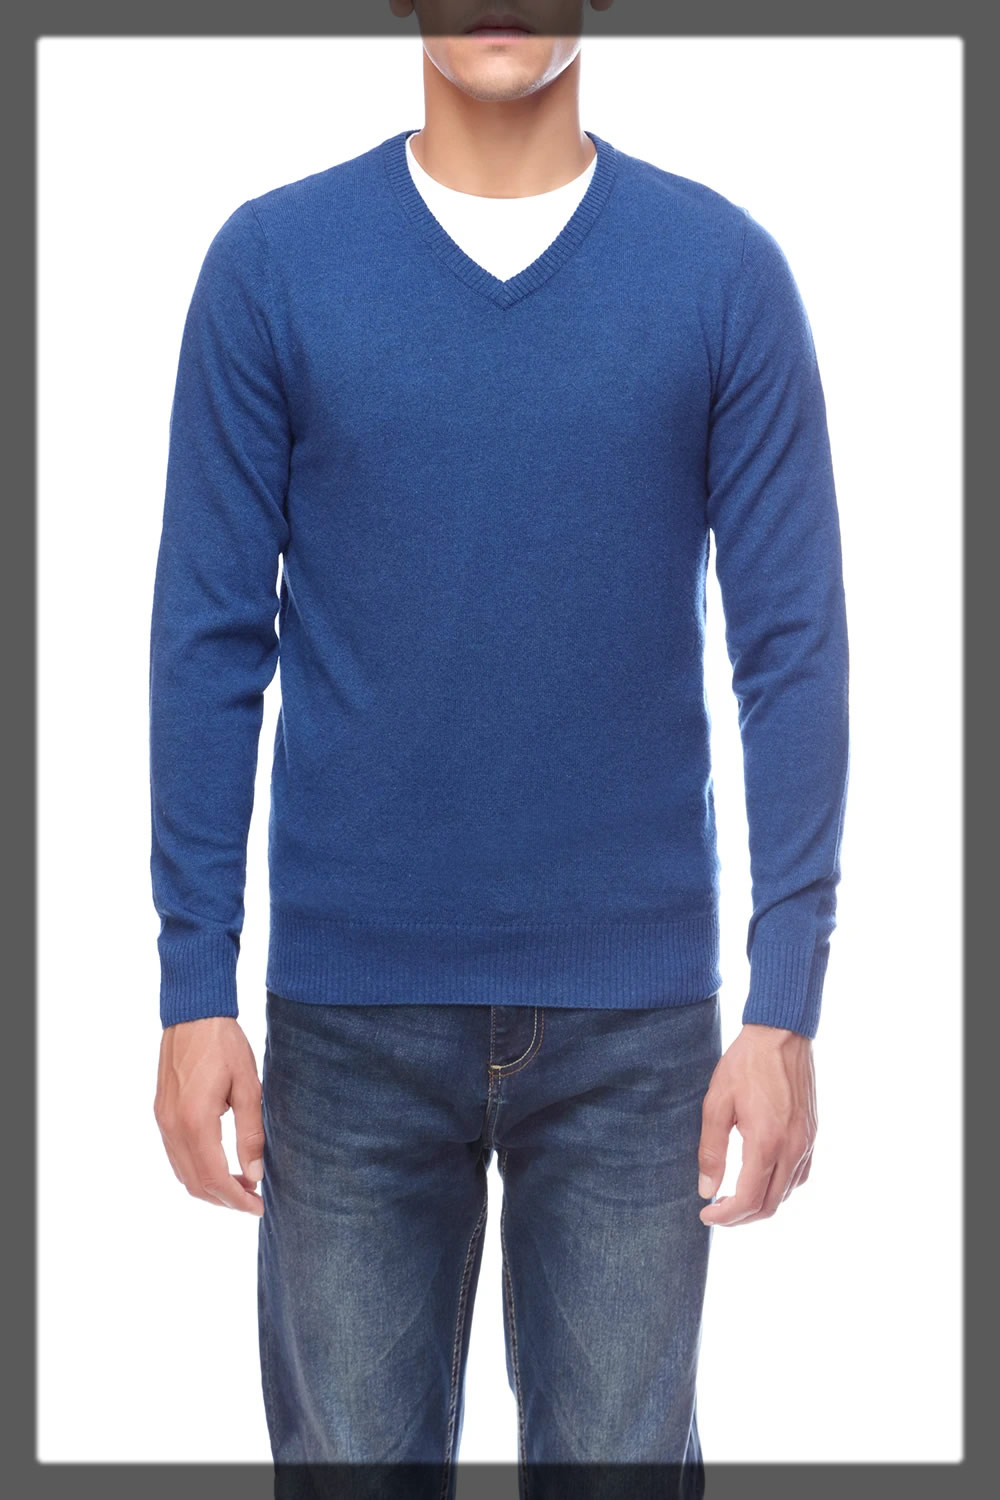 v-neck blue wool Winter Sweaters For Men